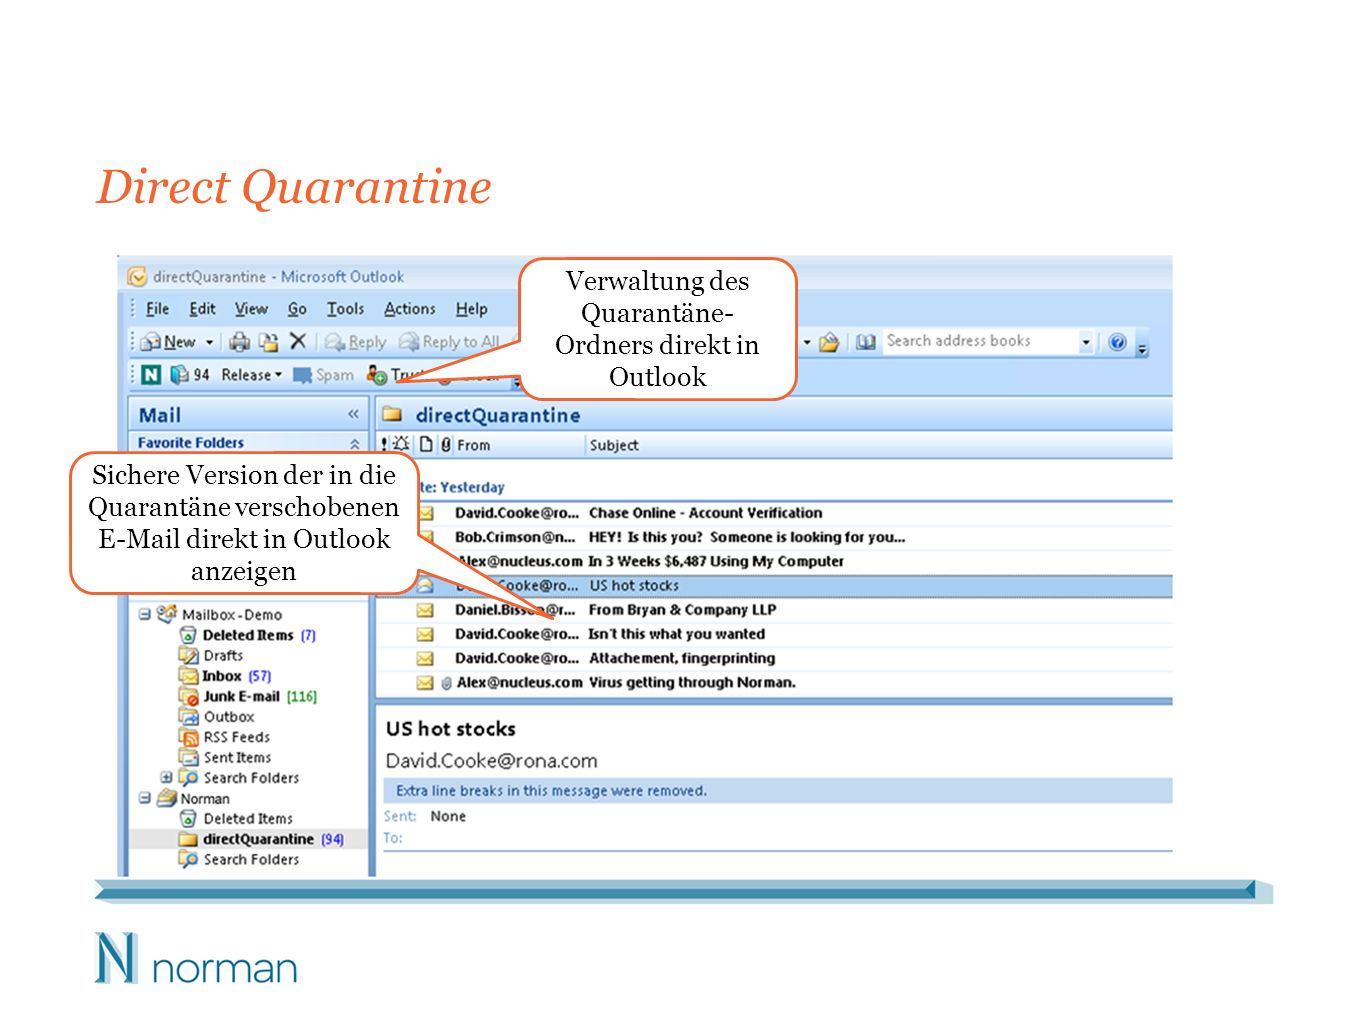 Direct Quarantine Verwaltung des Quarantäne- Ordners direkt in Outlook Sichere Version der in die Quarantäne verschobenen E-Mail direkt in Outlook anz